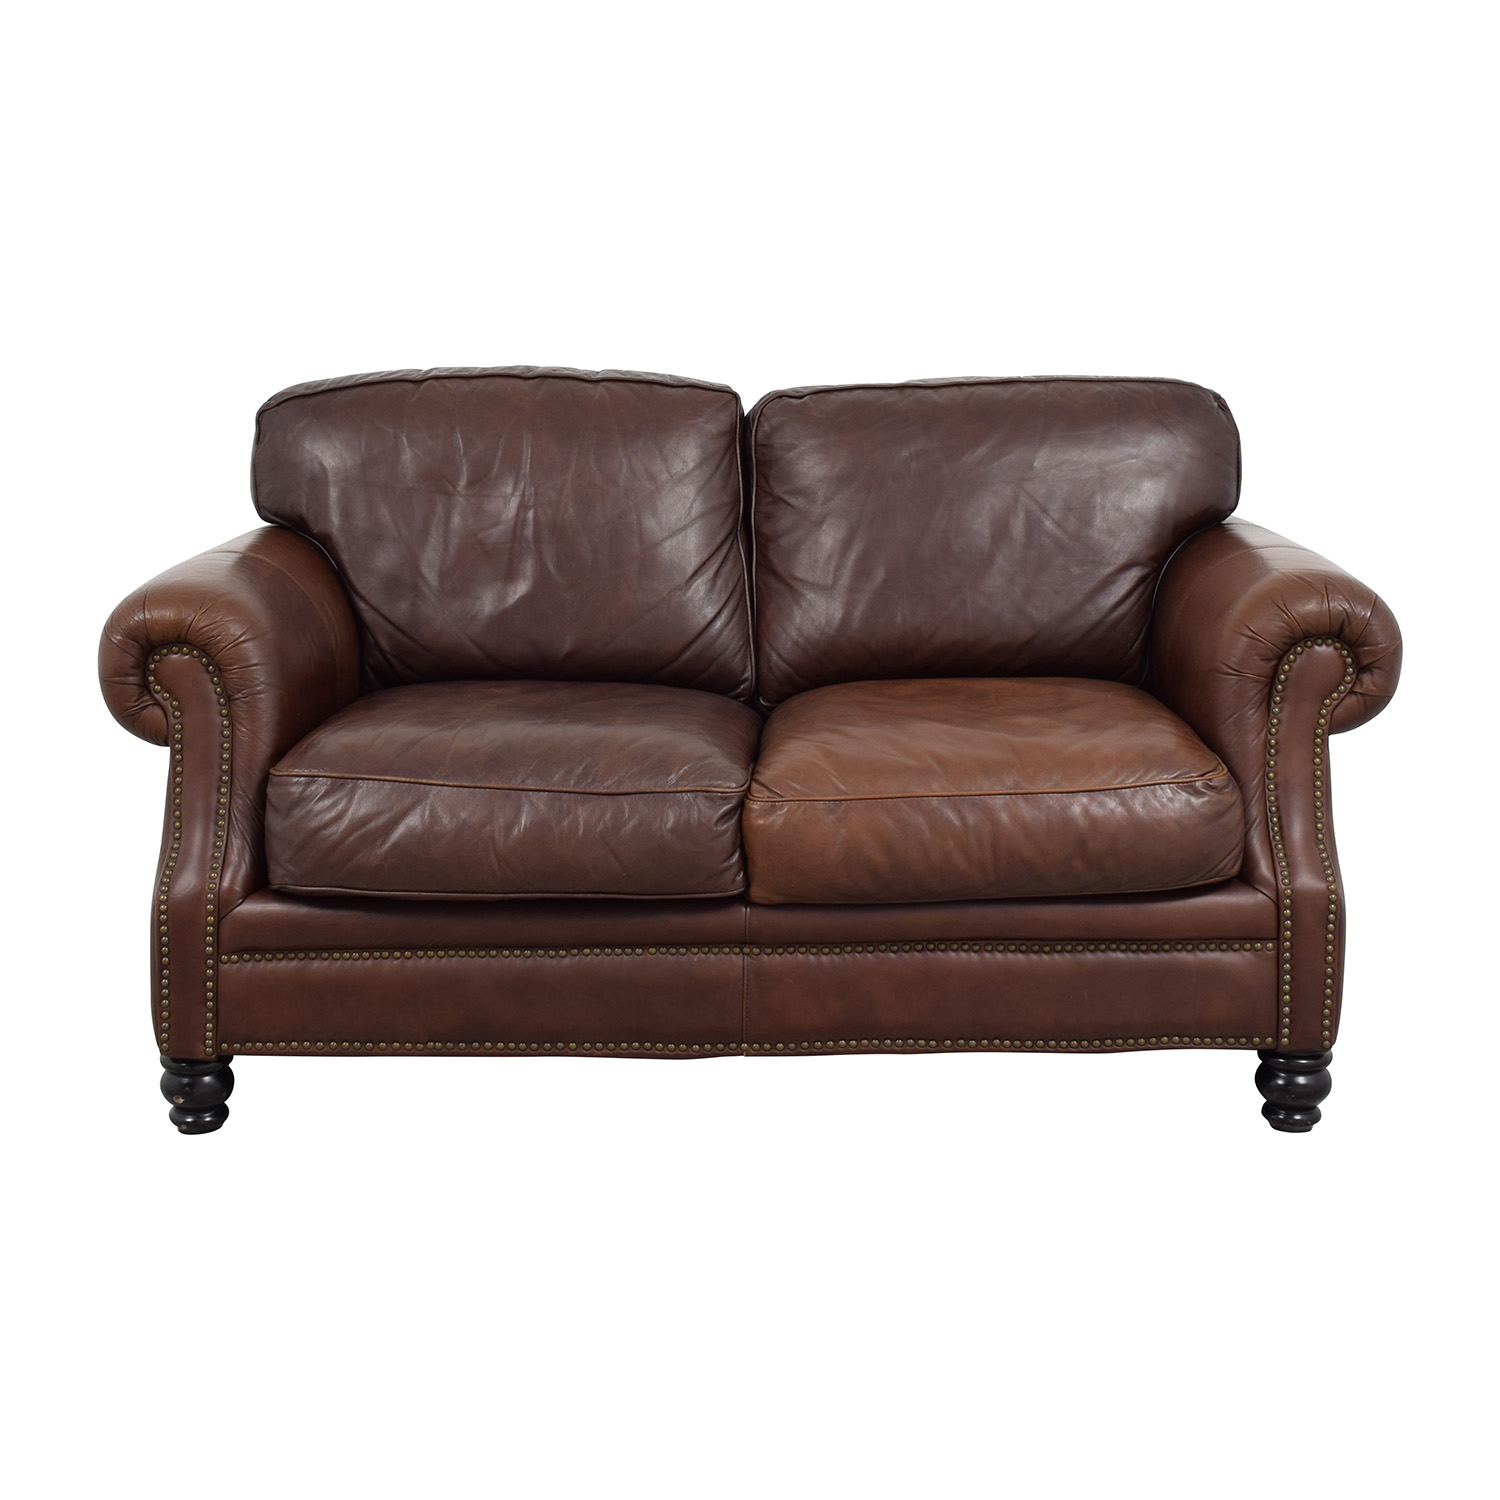 Leather Loveseat Loveseats Used Loveseats For Sale